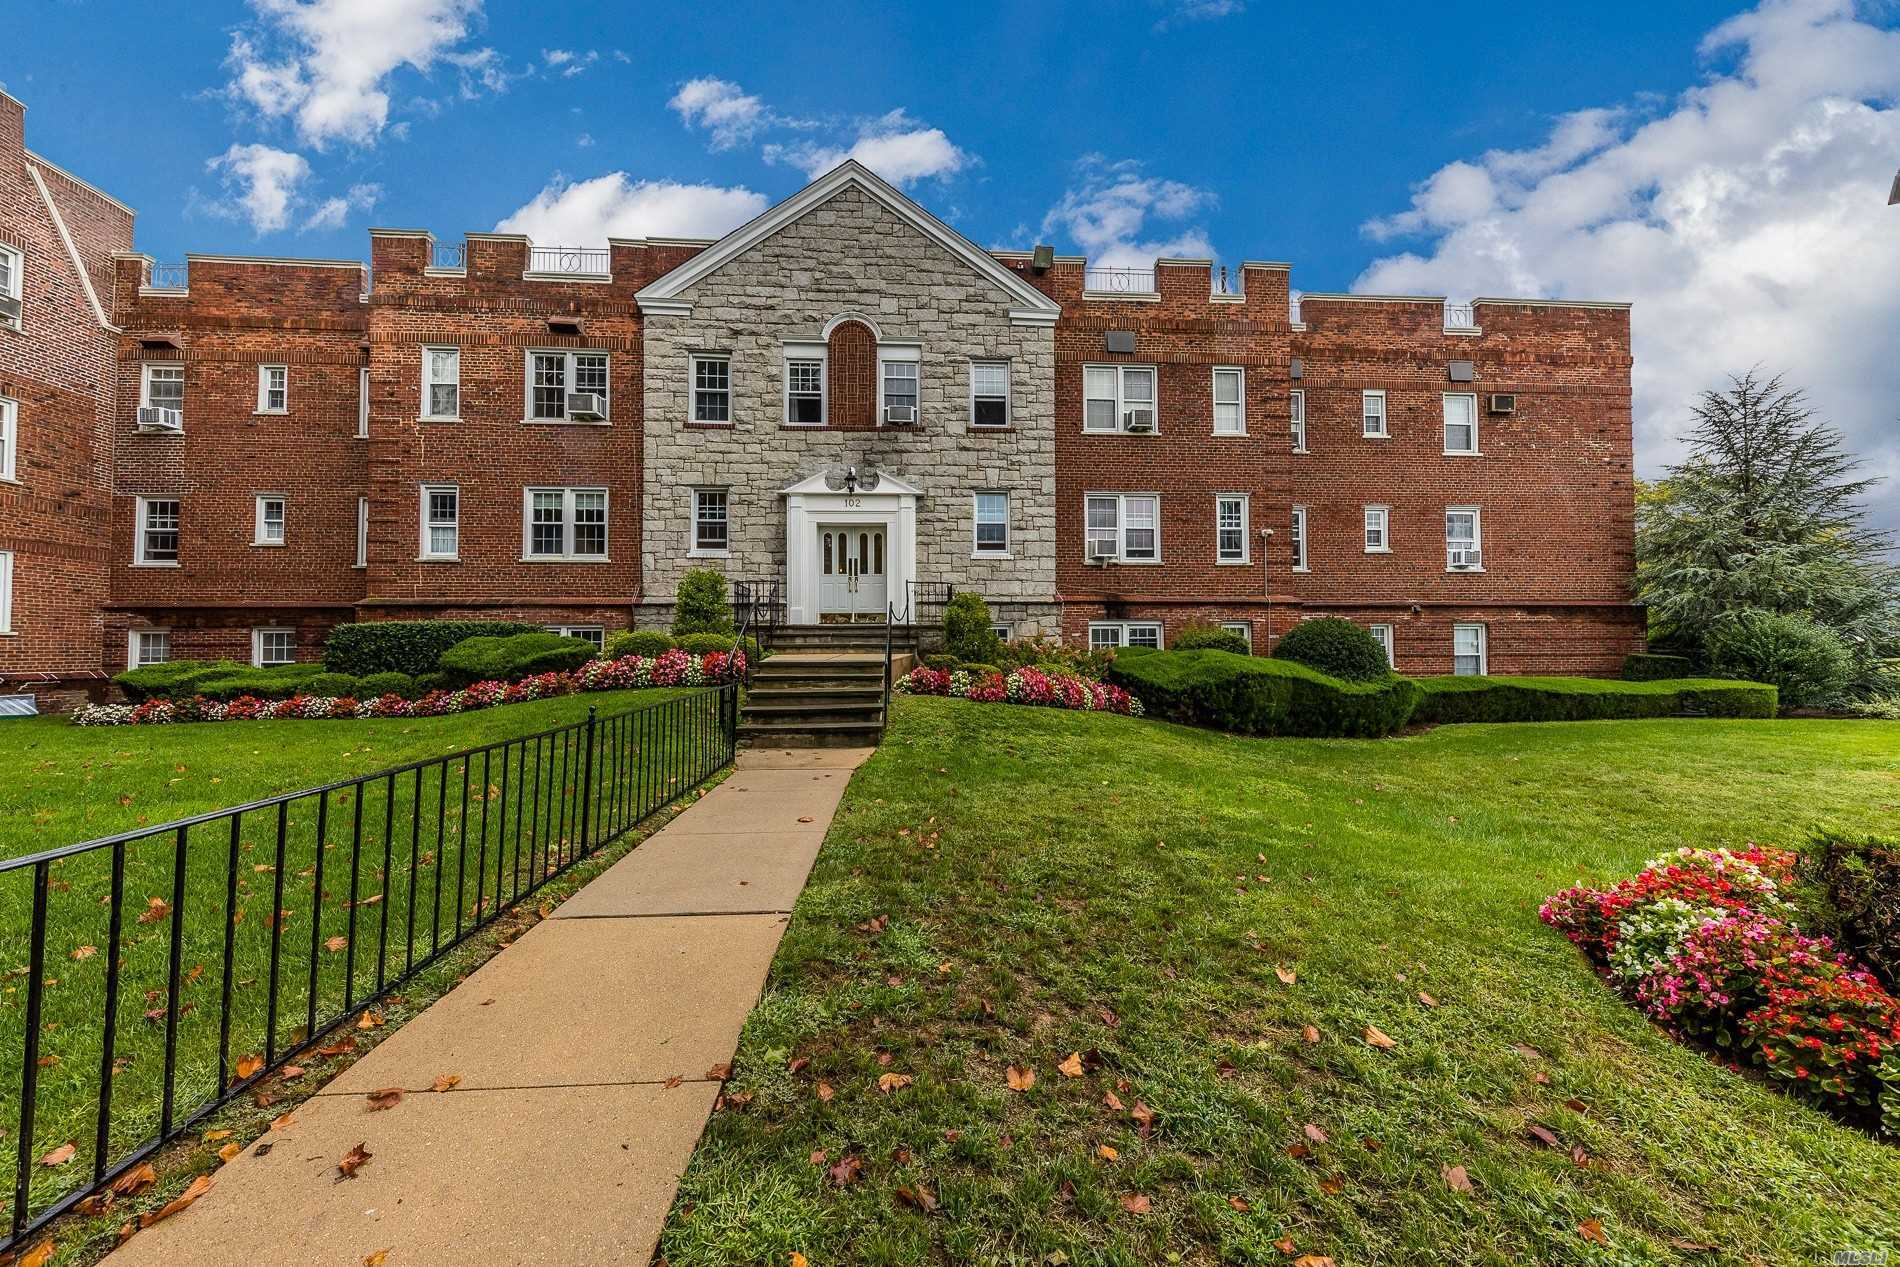 Pre War Building, Large Entry Foyer To Deluxe Unit. Oversized Living Room, Dining Room, 1 Br, 1 Bath, High Ceilings. Many Closets In Hallway. Wait List For Parking, Convenient Municipal Parking Behind Building. Laundry In Basement. One Flight Of Stairs To Unit. Convenient To Town, Great Restaurants Nearby And Lirr.